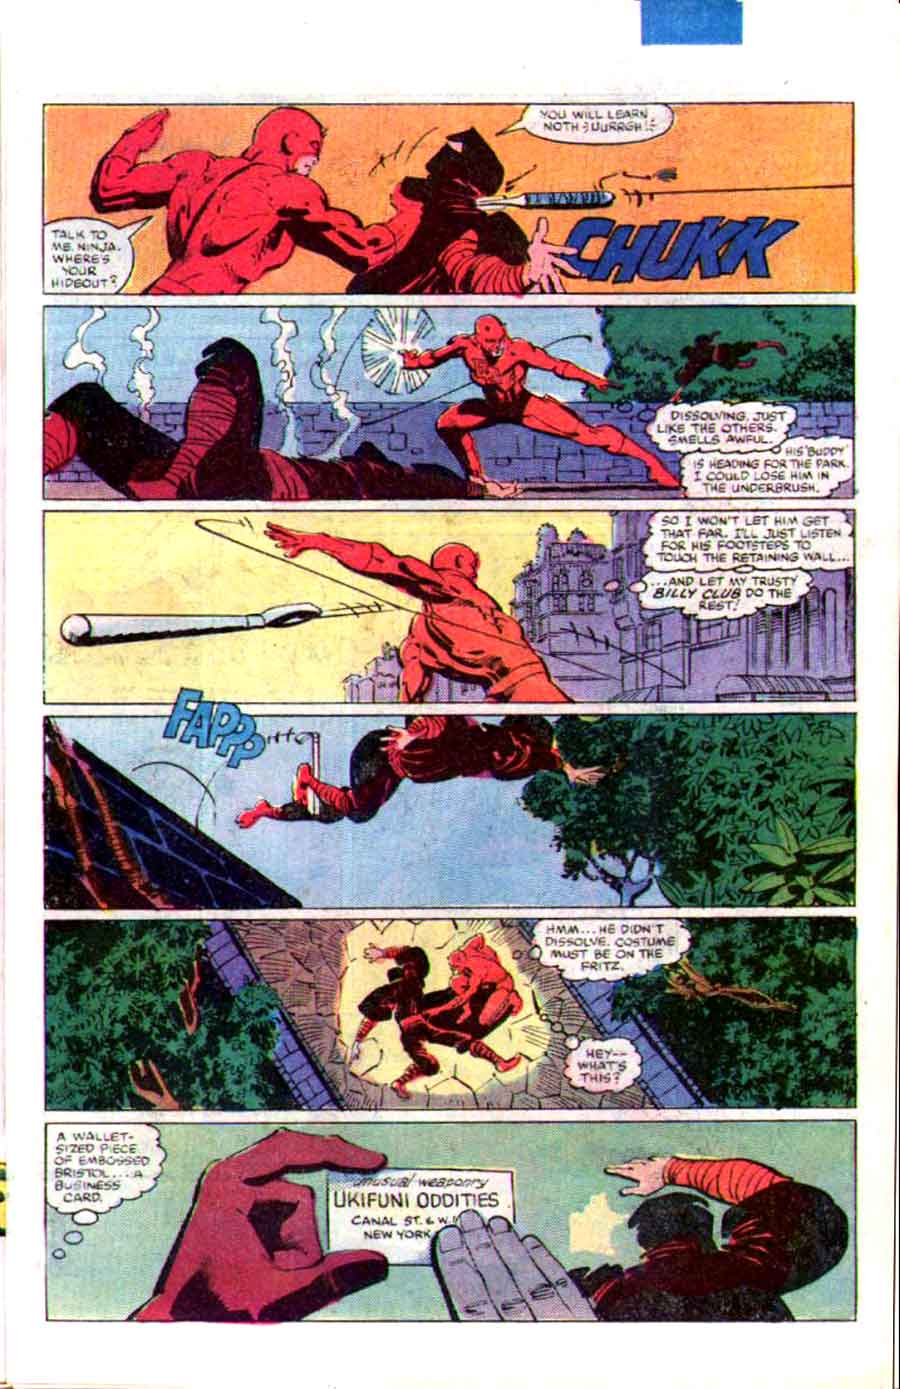 Daredevil v1 #175 marvel comic book page art by Frank Miller